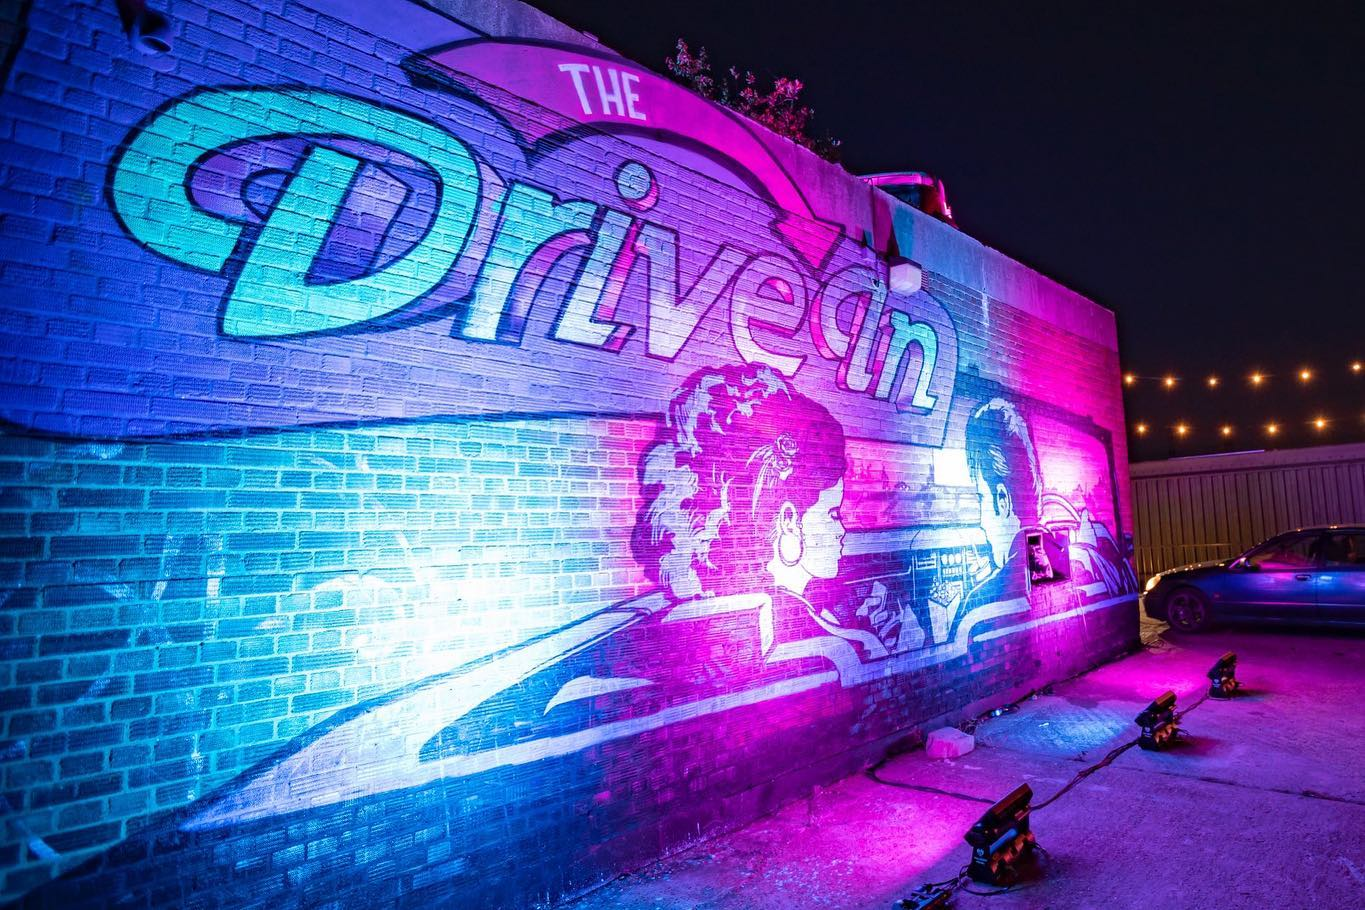 The Drive In logo projected against a wall in blue and purple.